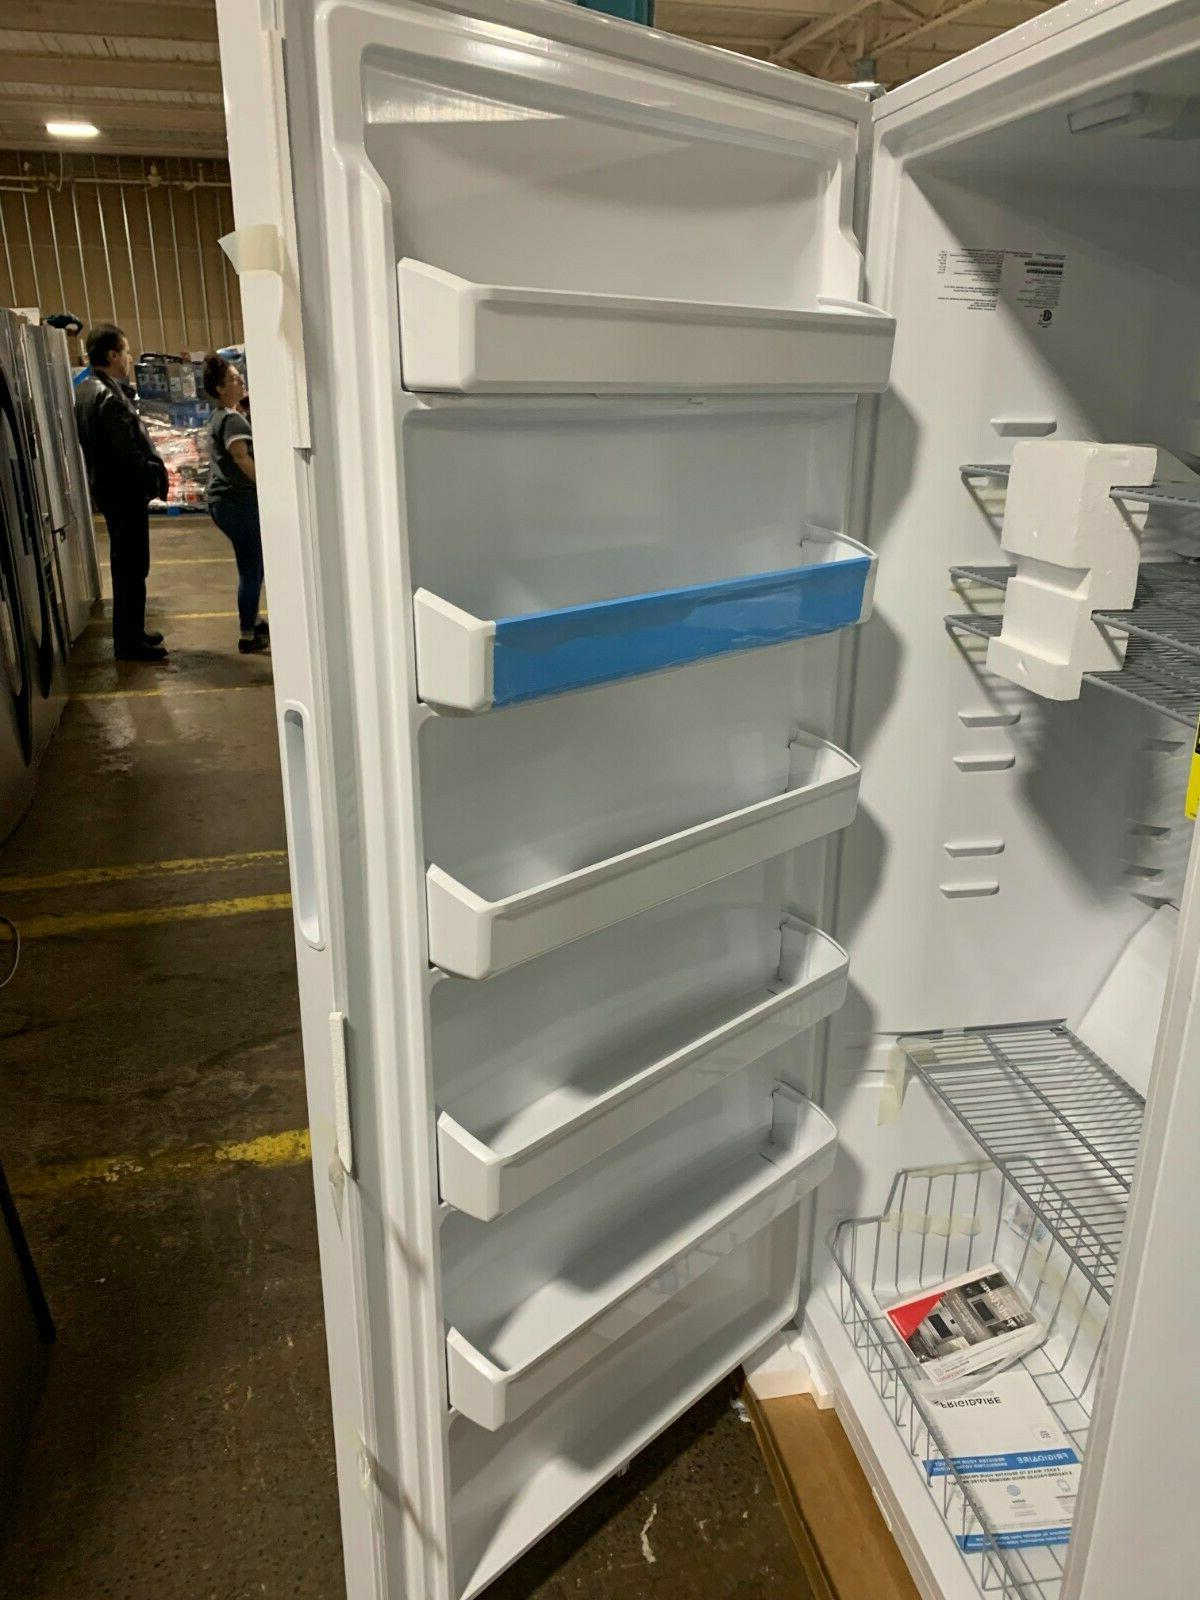 2020 FRIGIDAIER FREEZER NEW UPRIGHT 20.5 CU MODEL# WE